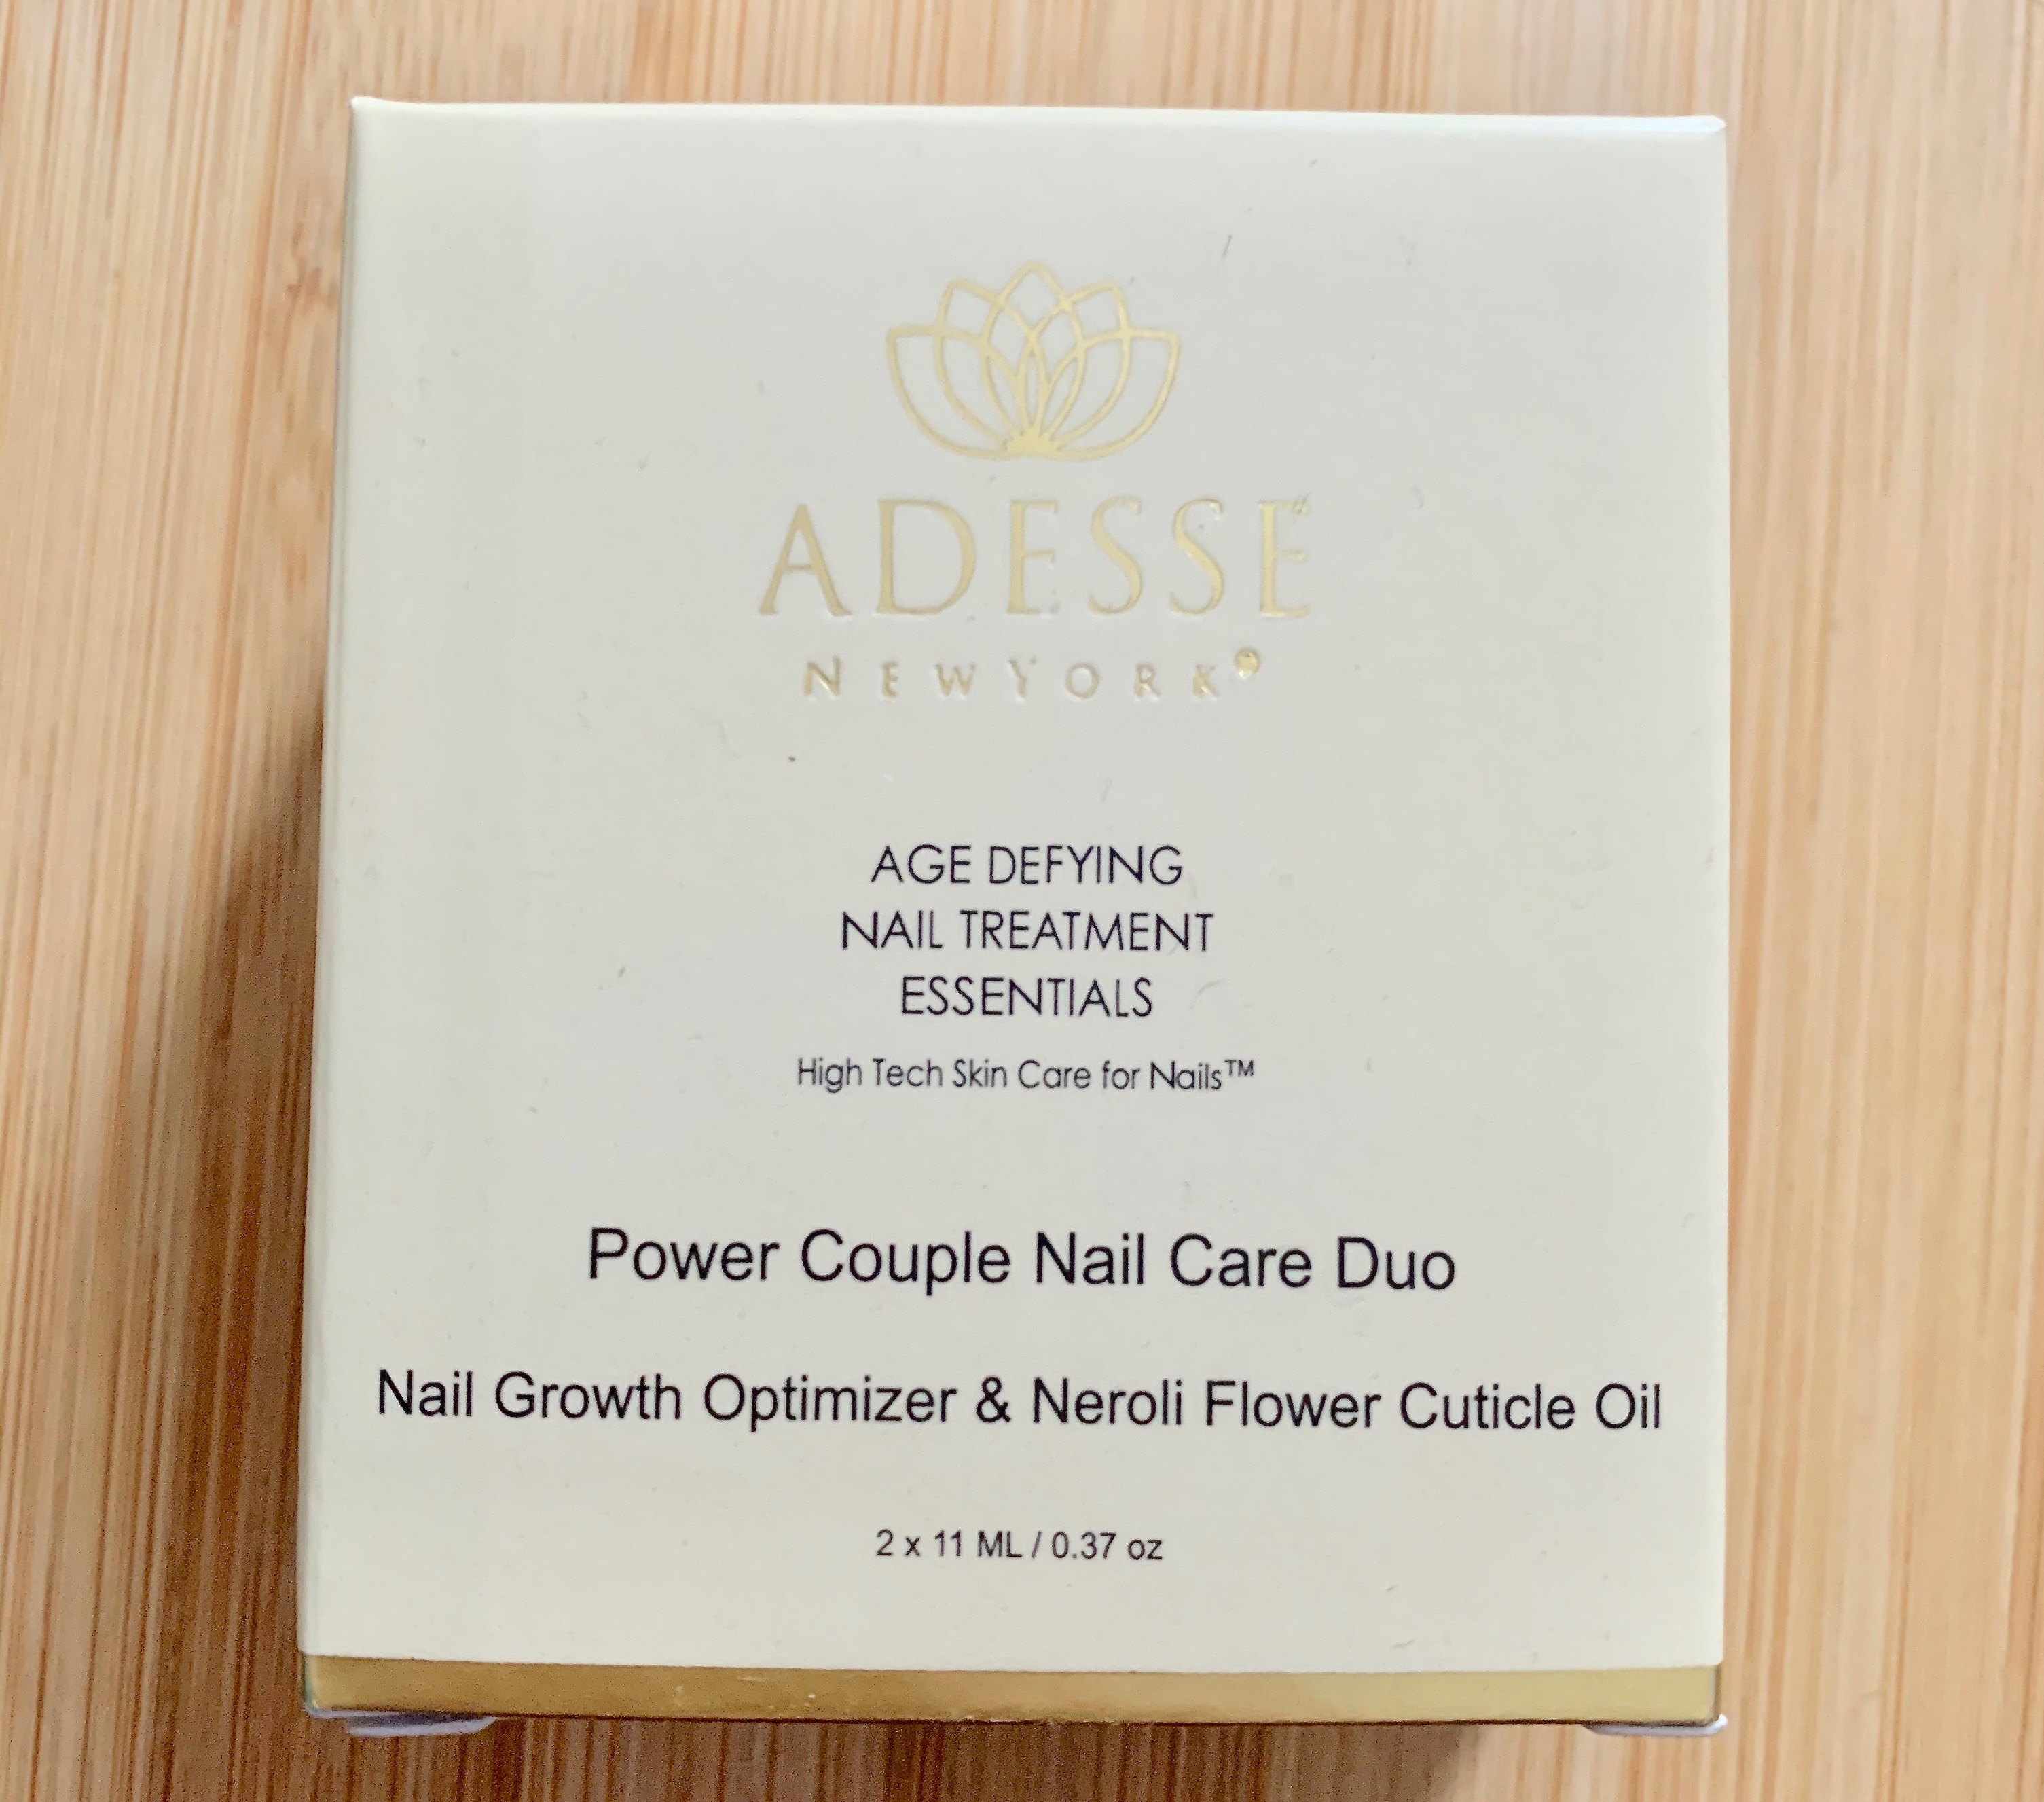 Adesse Power Couple Nail Care Duo